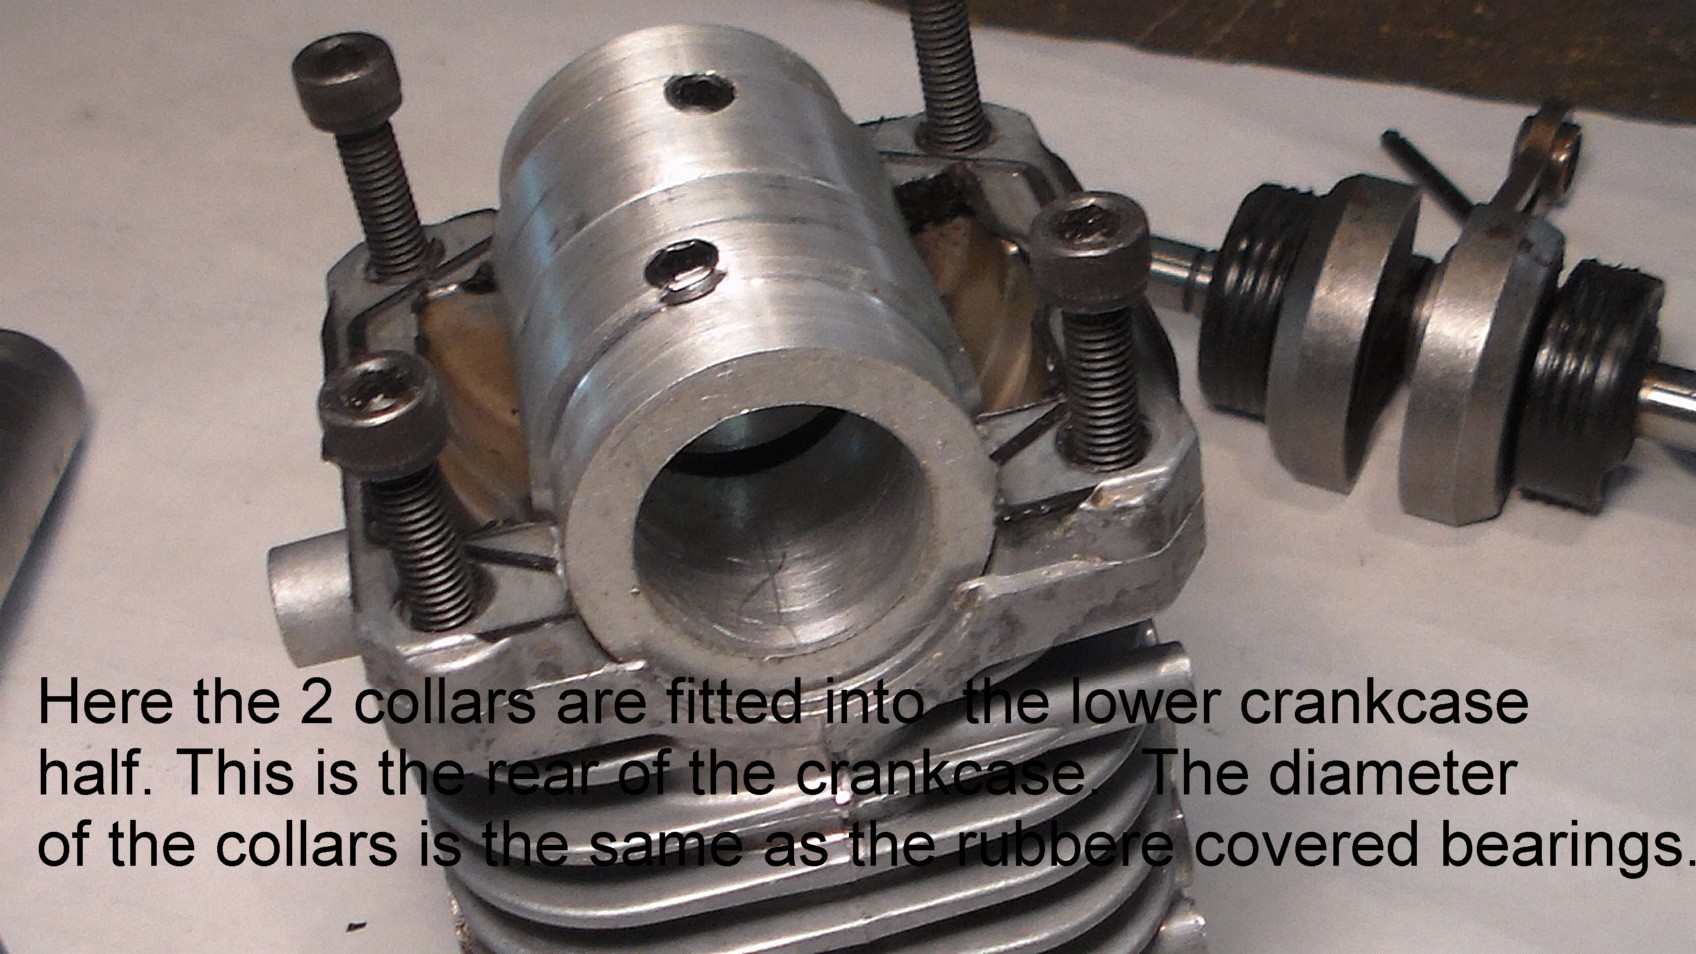 Click image for larger version  Name:Crankcase4.jpg Views:153 Size:358.1 KB ID:2194917